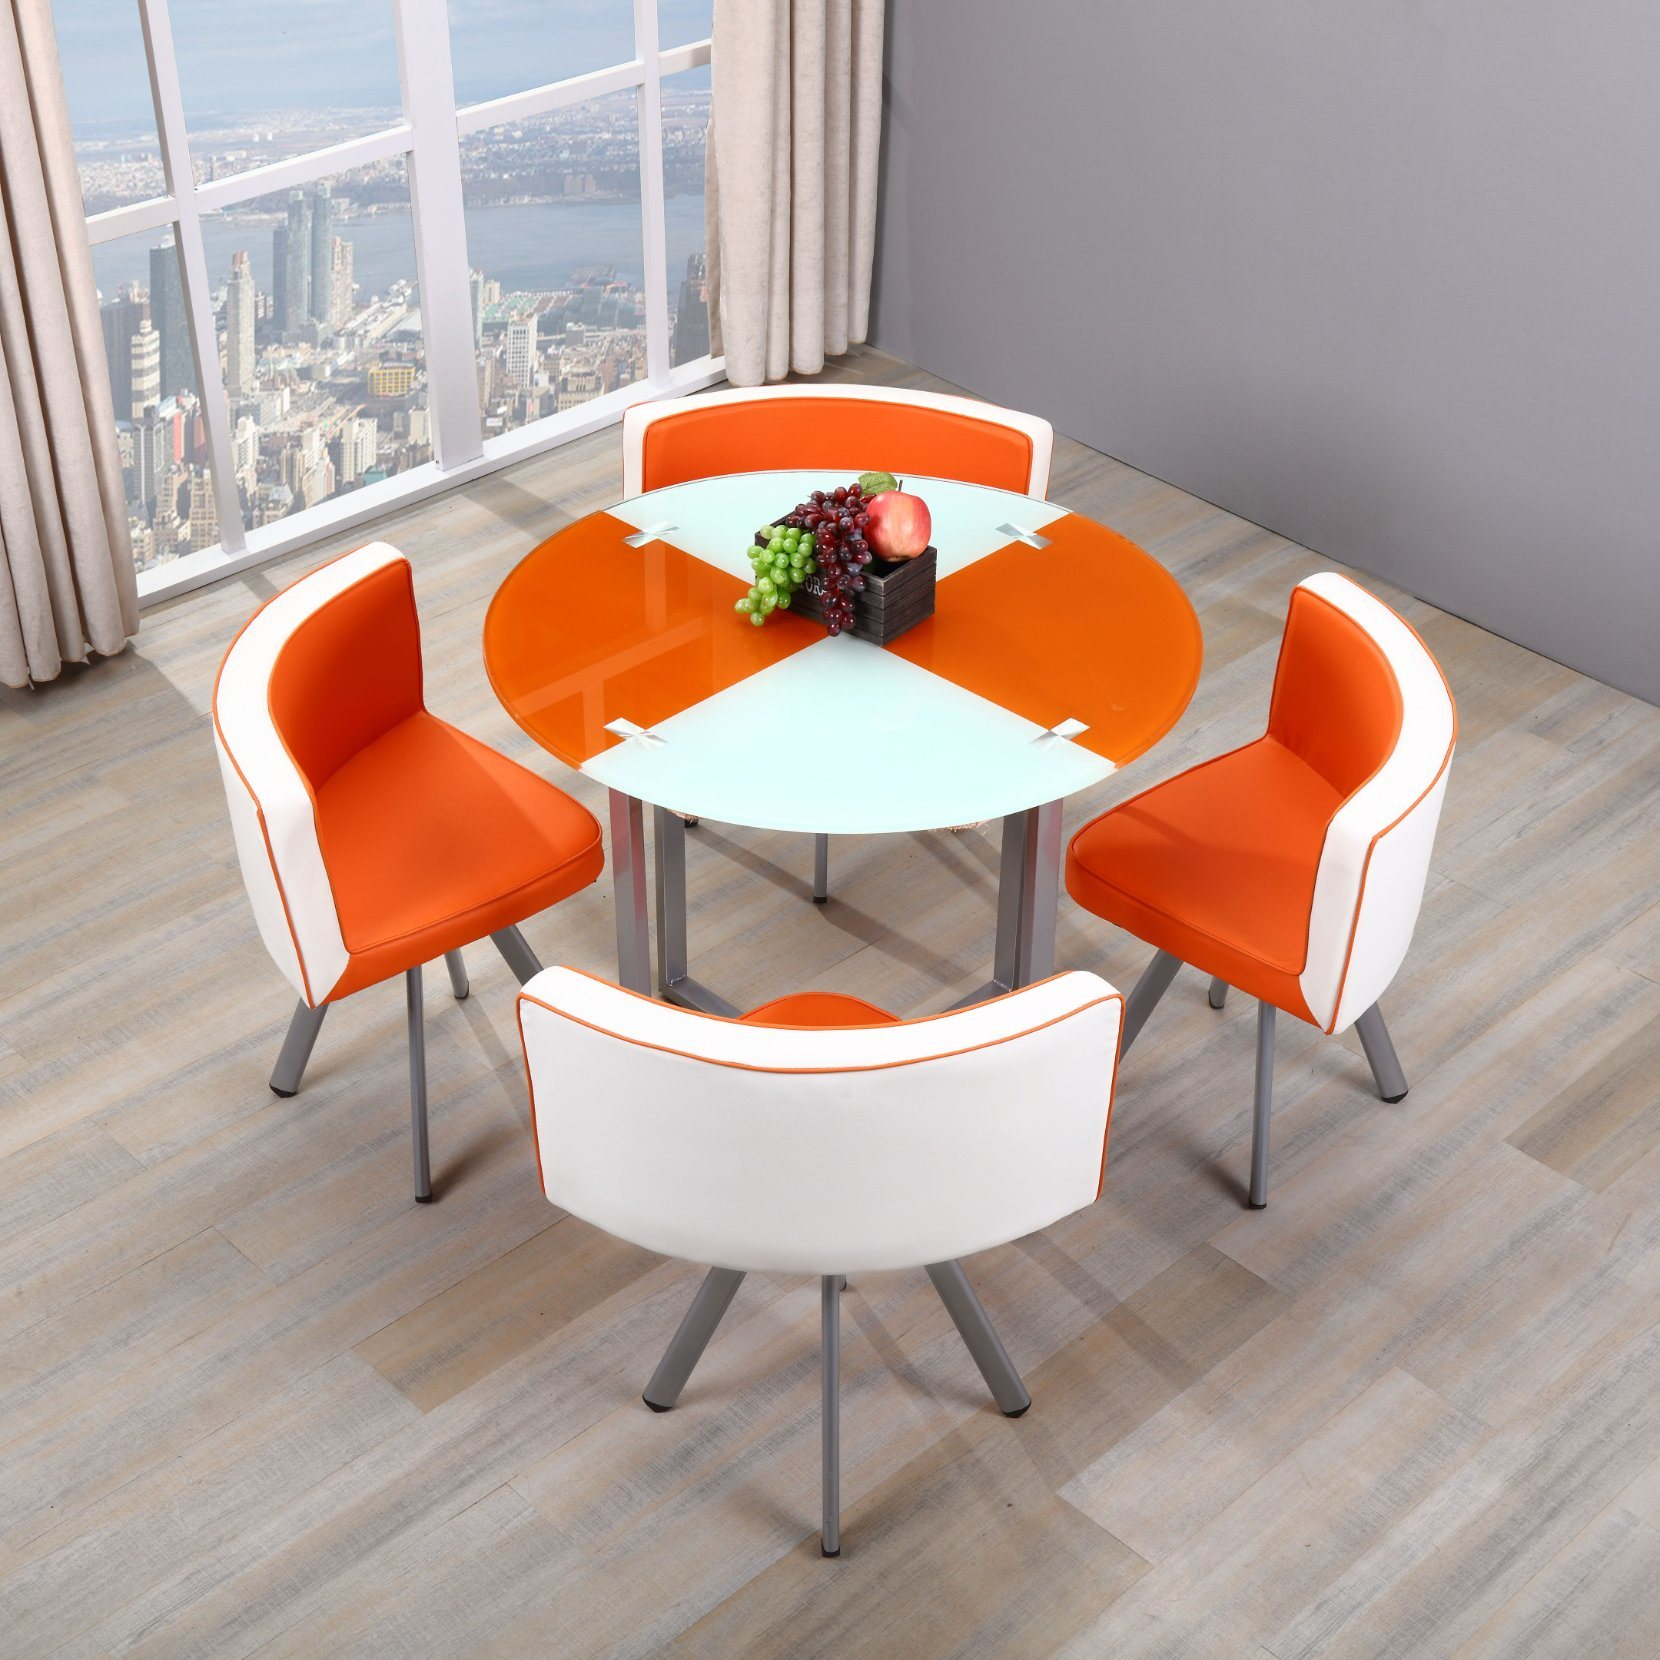 Dining Room Furniture, High Quality Dining Room Sets